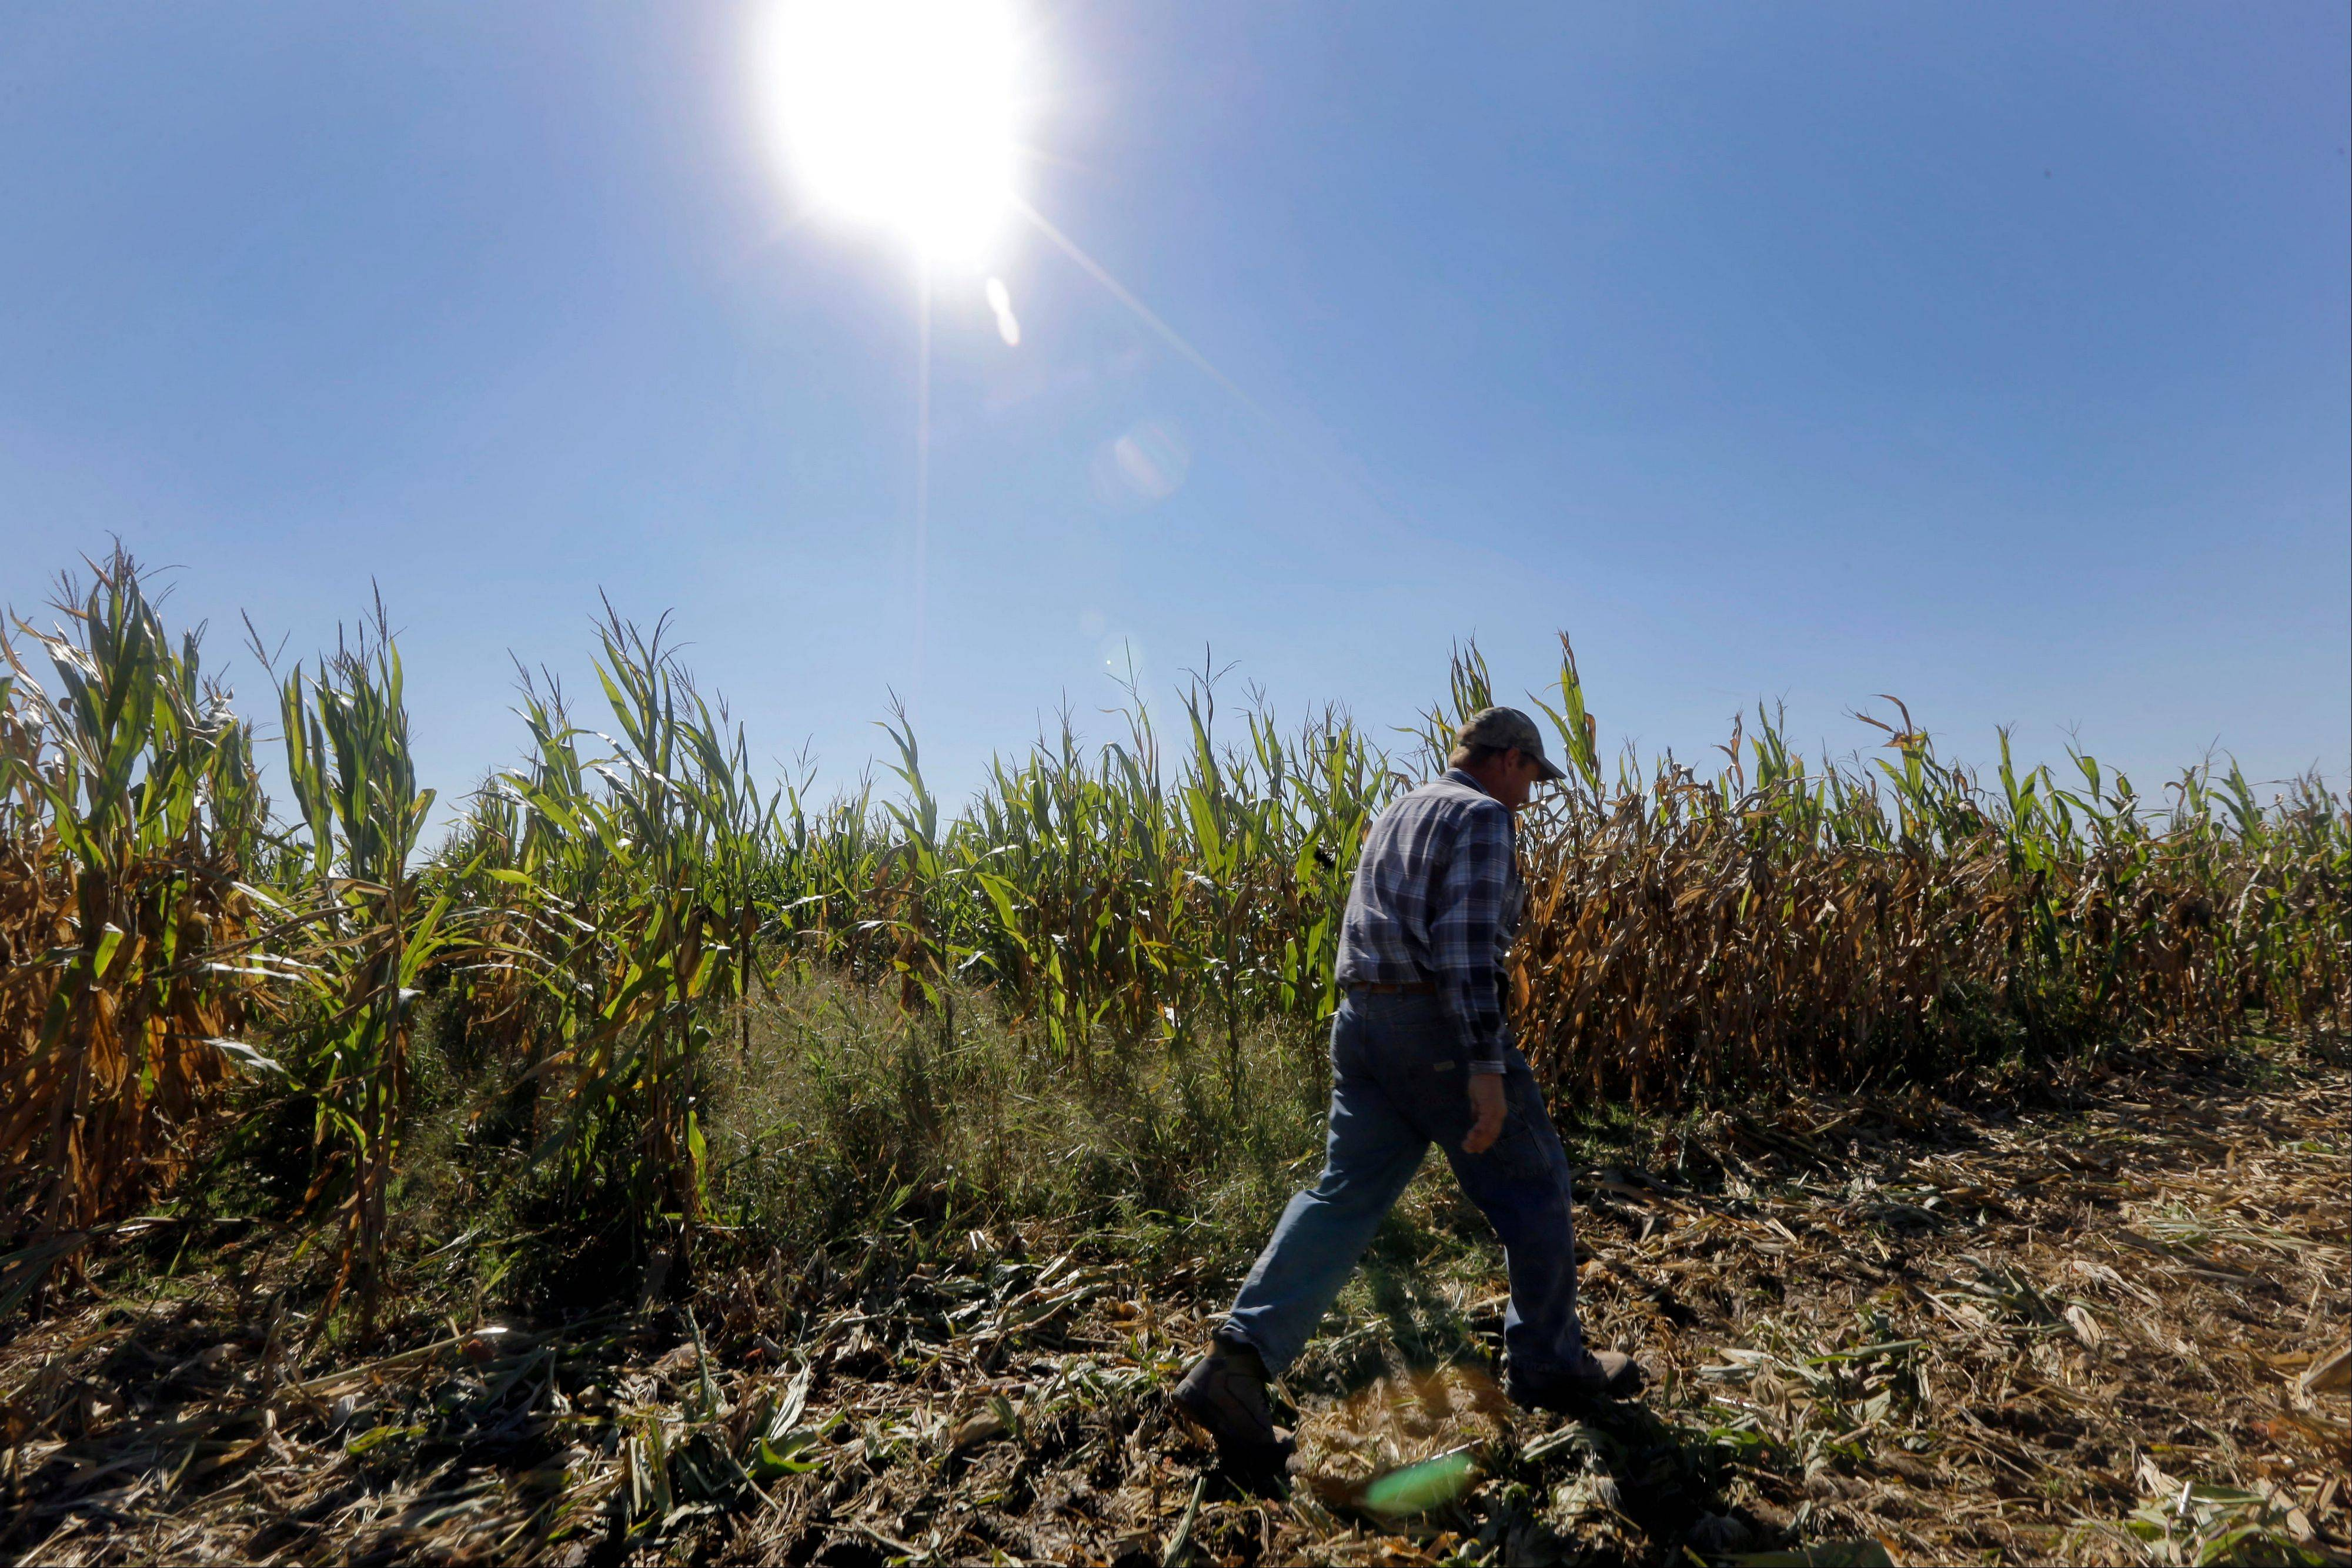 Lawmakers are betting that government-backed private farm insurance will be better than the program being replaced: a direct-payment system that distributed $5 billion a year based on acreage. Supporters of the change say payouts based on losses is more cost-effective and targets farmers in need.